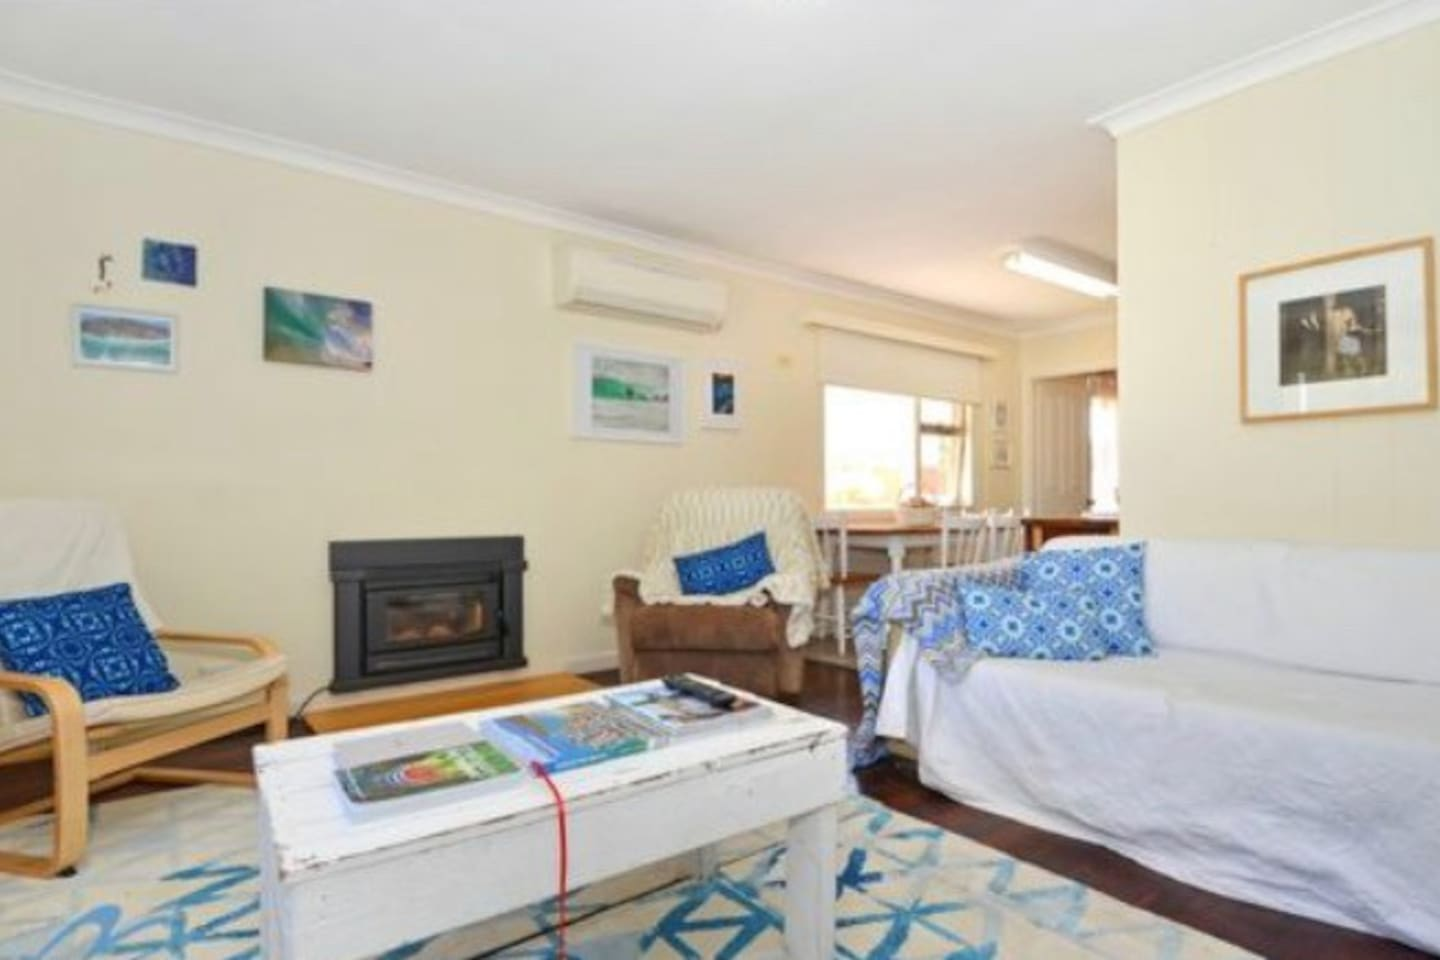 Shared space loungeroom - air con in summer, fireplace in winter, cheerful and cosy